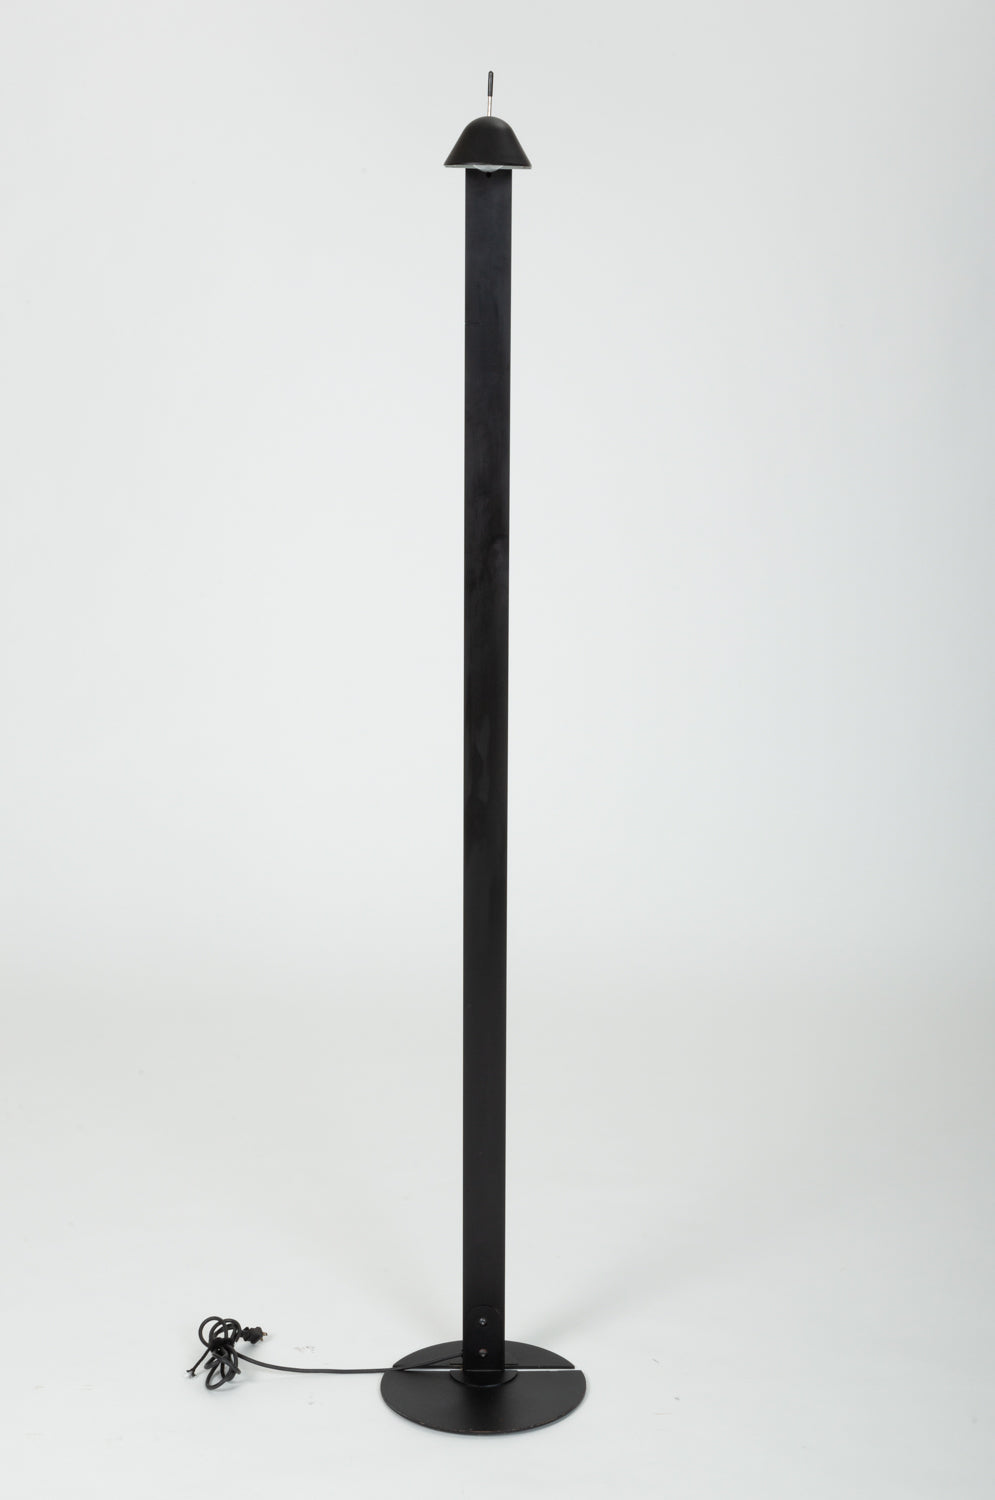 Ron Rezek Adjustable Floor Lamp